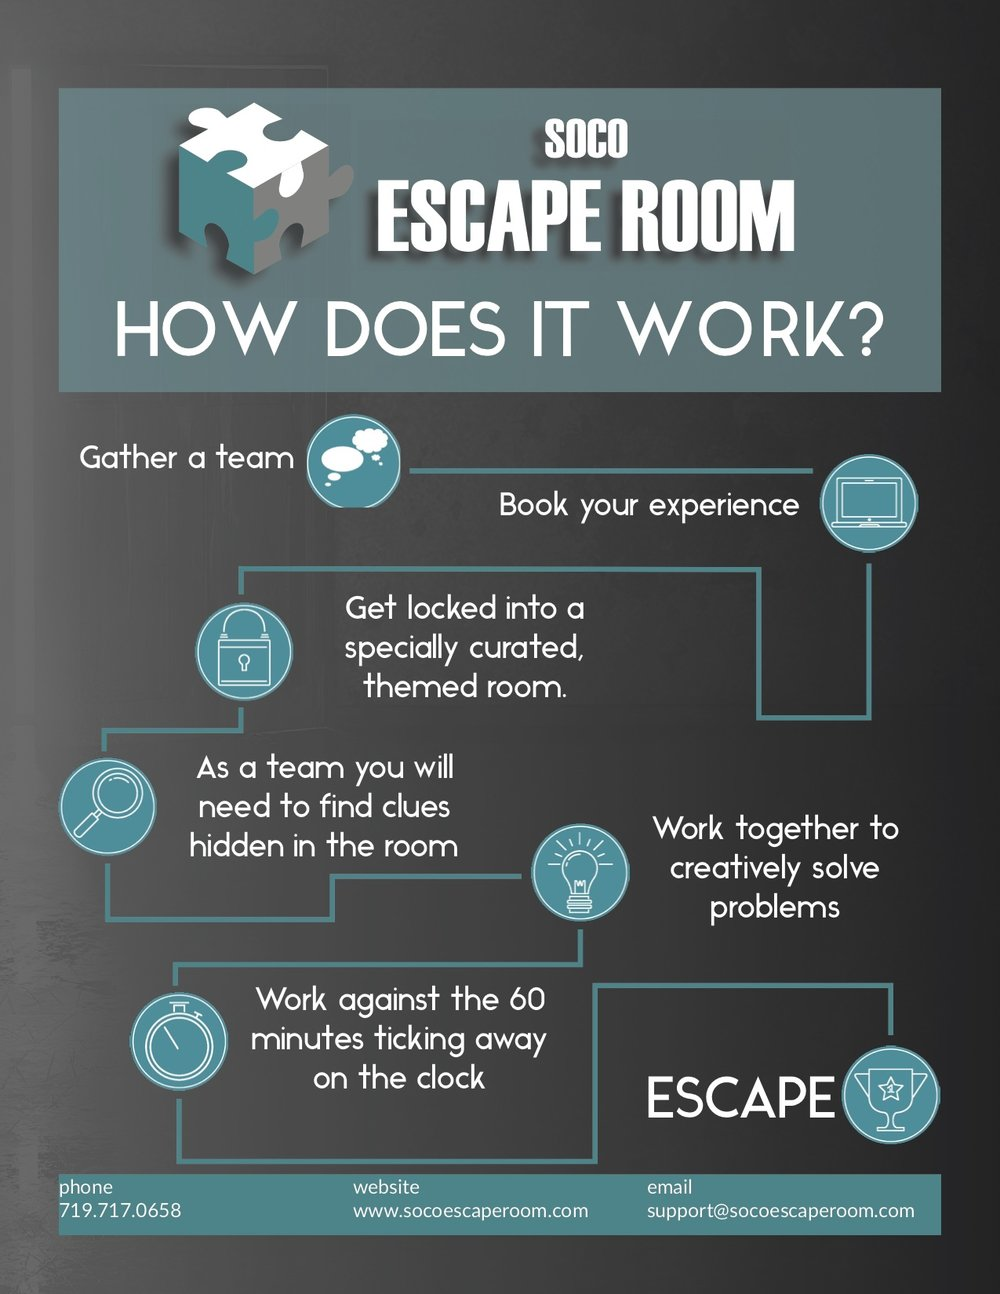 Many will enter, few will escape. - Whether you're having a night out with family or friends, setting up a date, or planning a team building activity, SoCo Escape Room is where you come to ditch the work week doldrums and avoid the same-old, same-old.Find yourself transported into a wondrous live-action experience that will leave you wanting more. Do you think you can you save the galaxy, rob the vault, or halt the malware before the clock runs out?